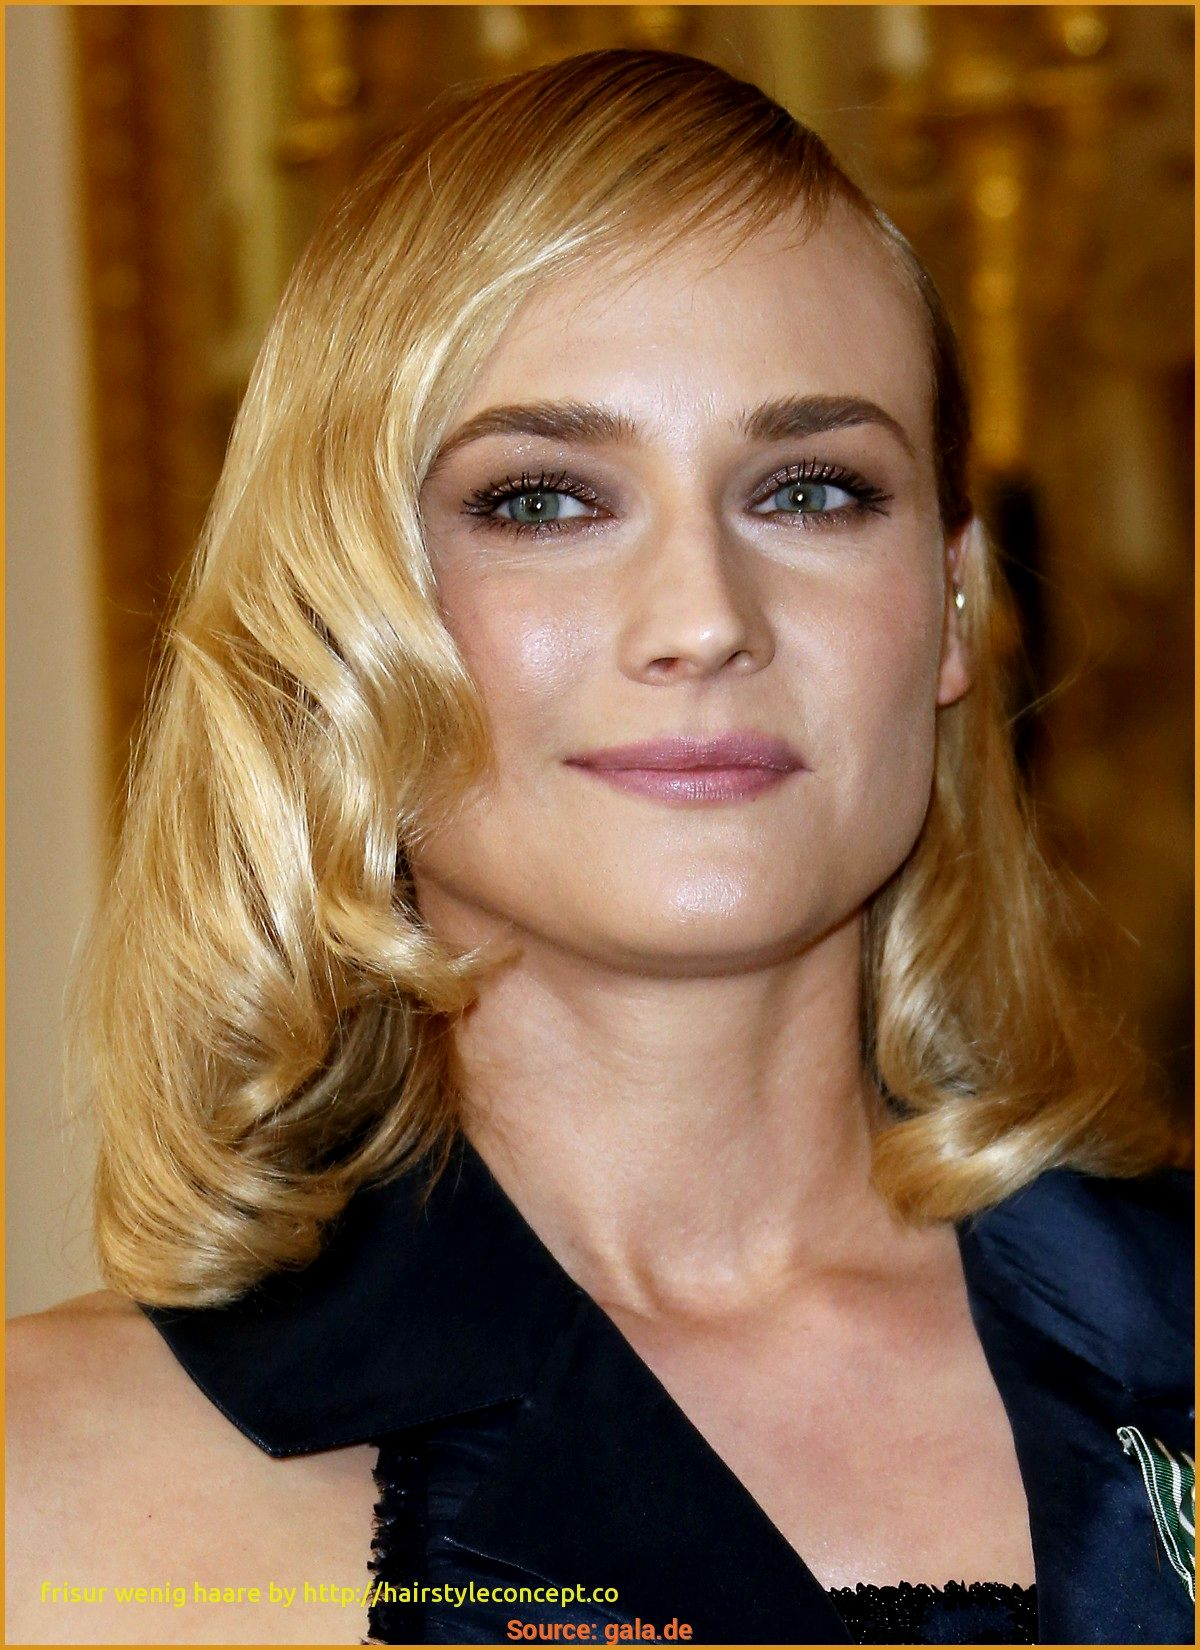 New Hairstyles For Thick Hair Portrait Luxury Hairstyles For Thick Hair Concepts